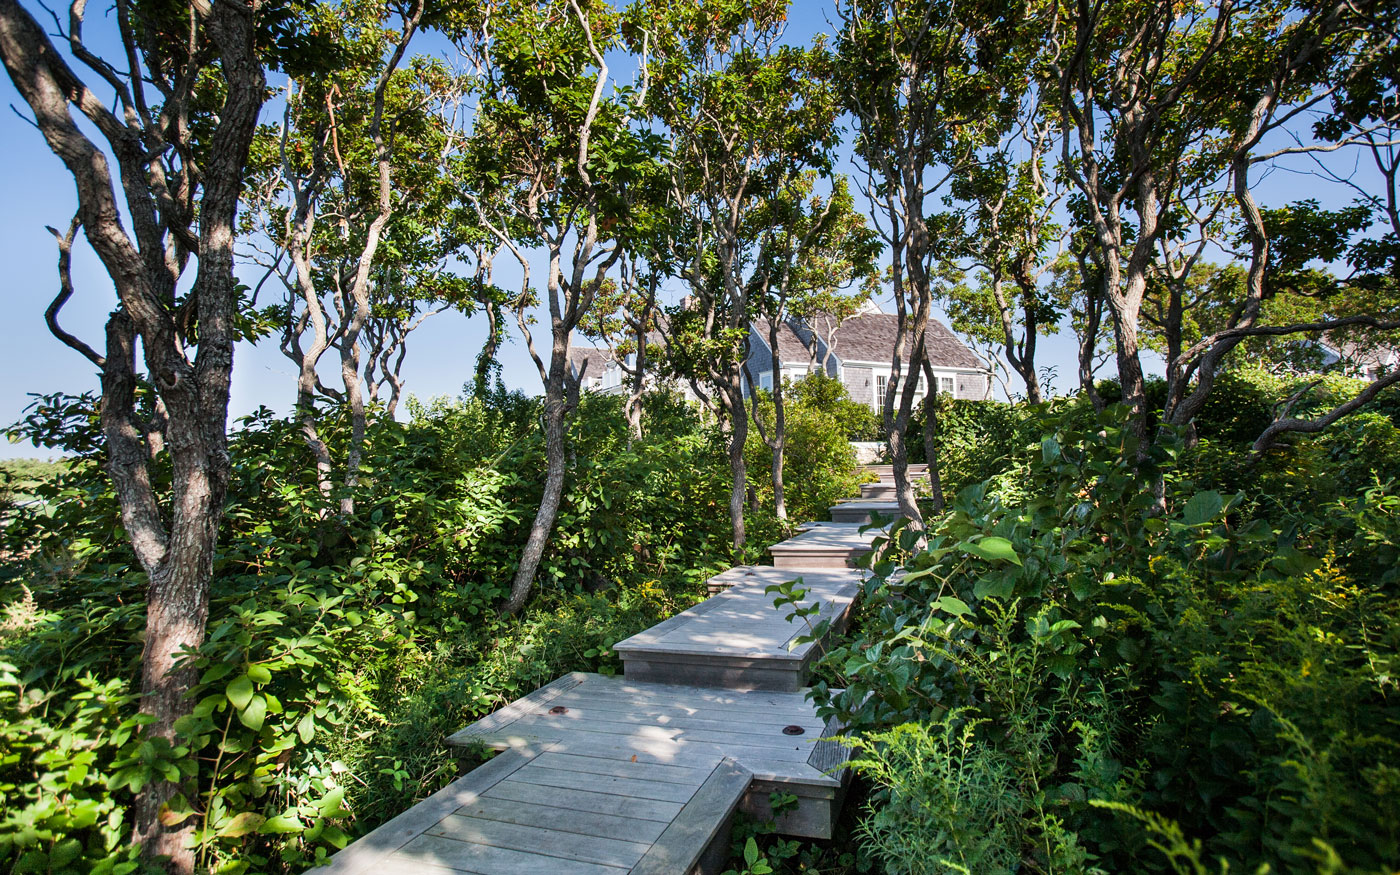 Custom boardwalk designed by Leblanc Jones Landscape Architects